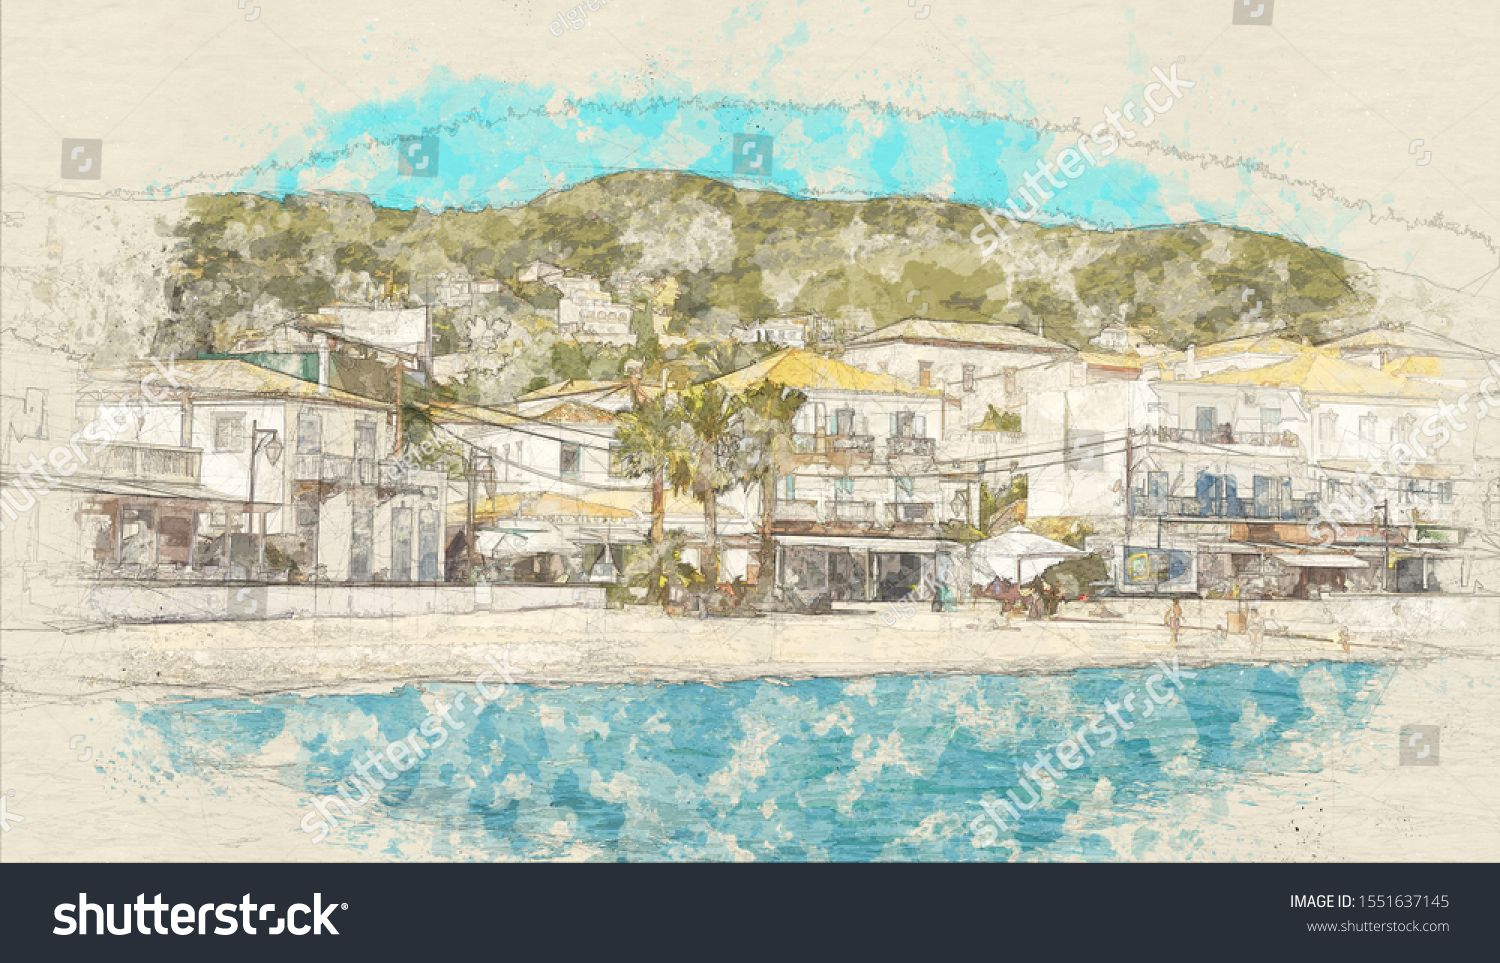 Sketch of buildings of Spetses island on Saronic gulf near Athens, Greece. Tourism concept. Color i